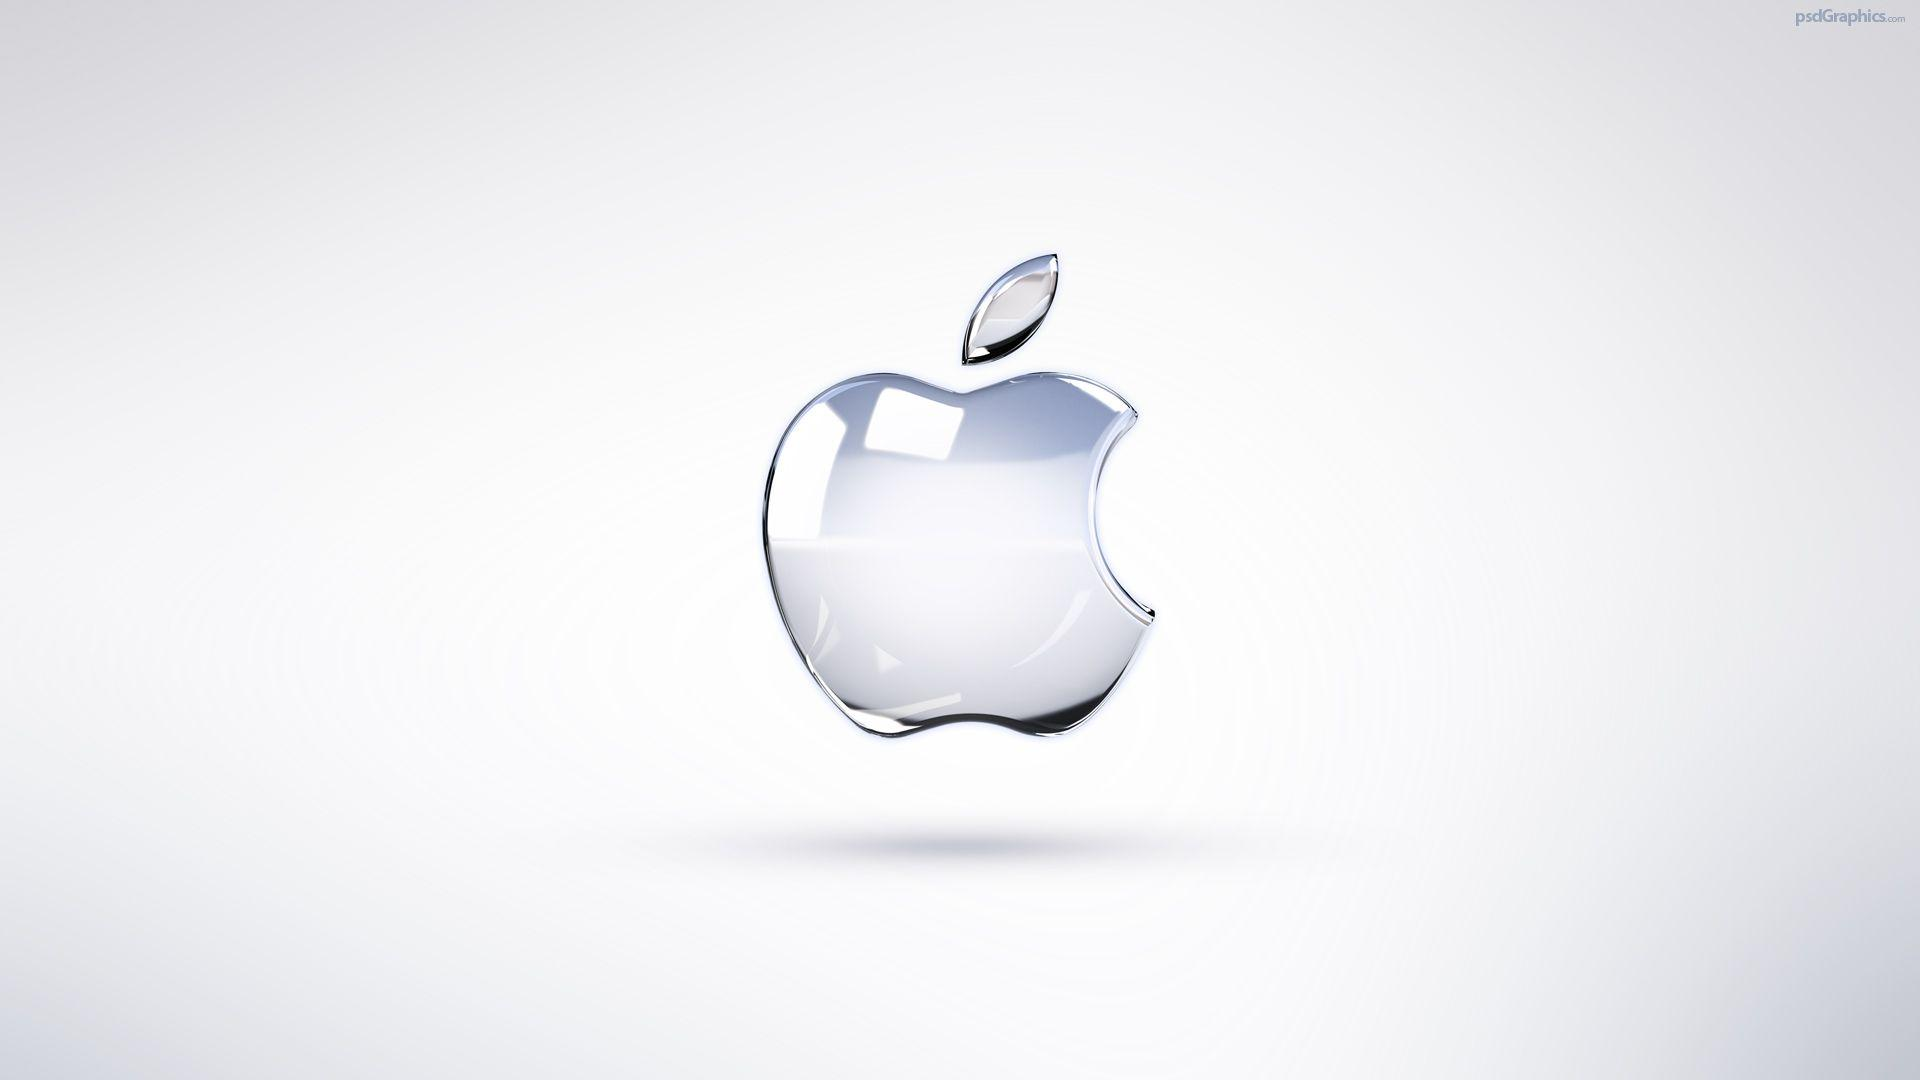 HD Apple Wallpapers 1080p Group